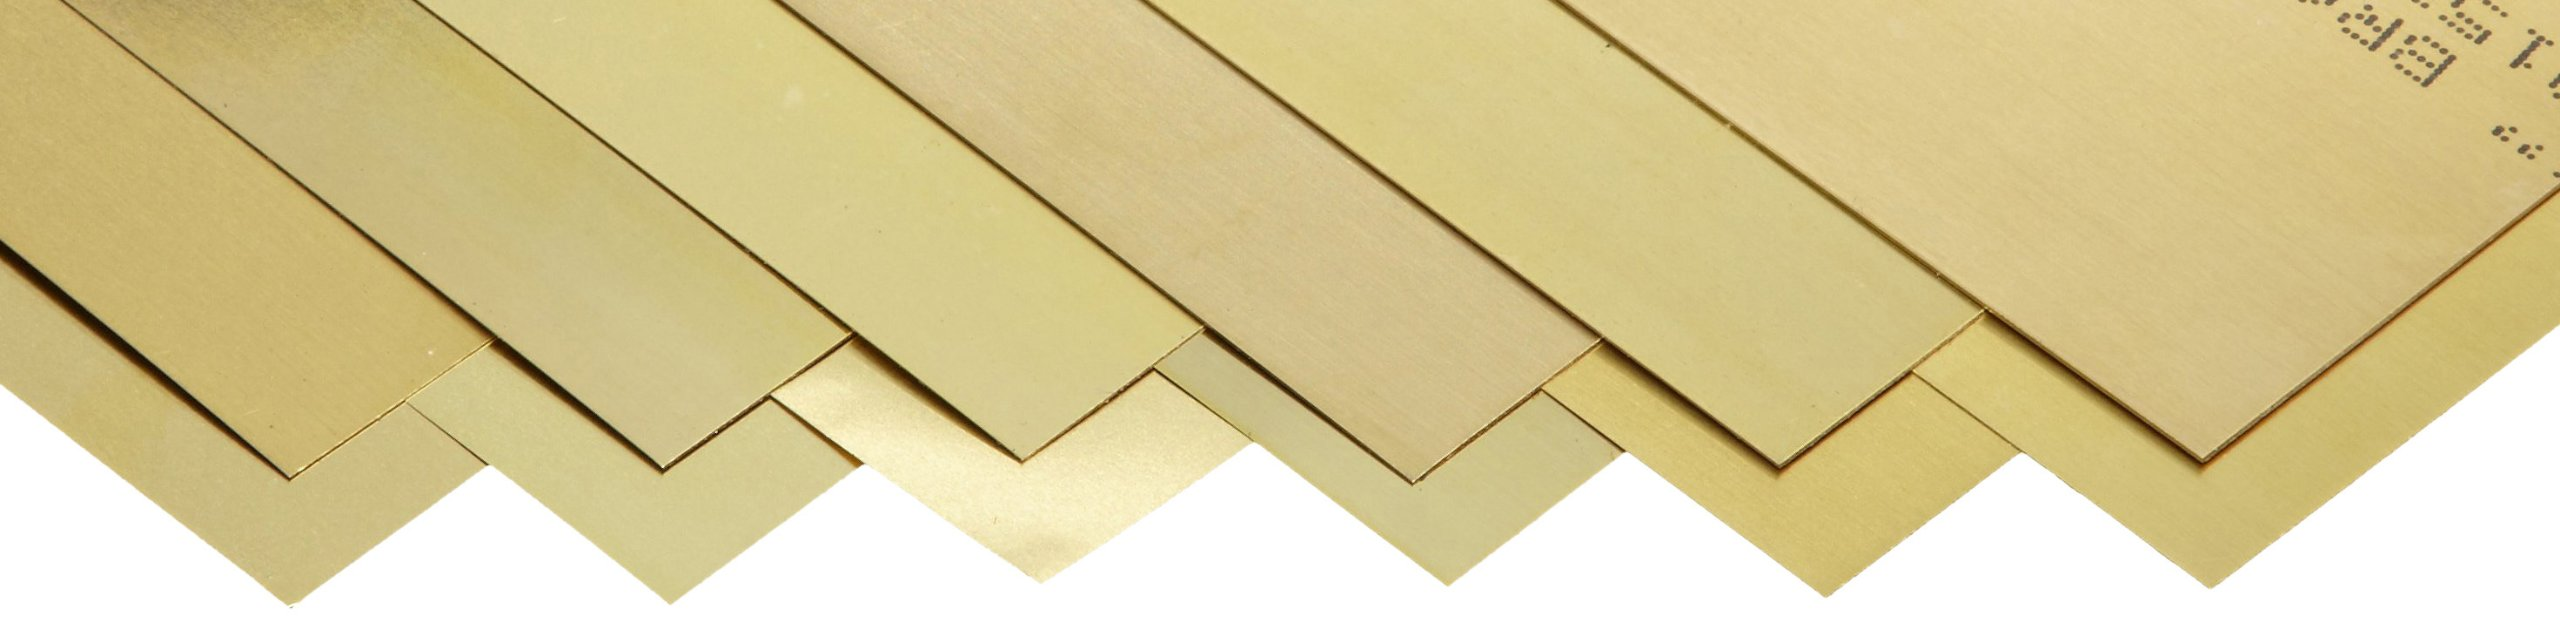 260 Brass Sheet, Unpolished (Mill) Finish, Half Hard Temper, 0.001-0.015'' Thickness, 6'' Width, 12'' Length (Pack of 12) by Small Parts